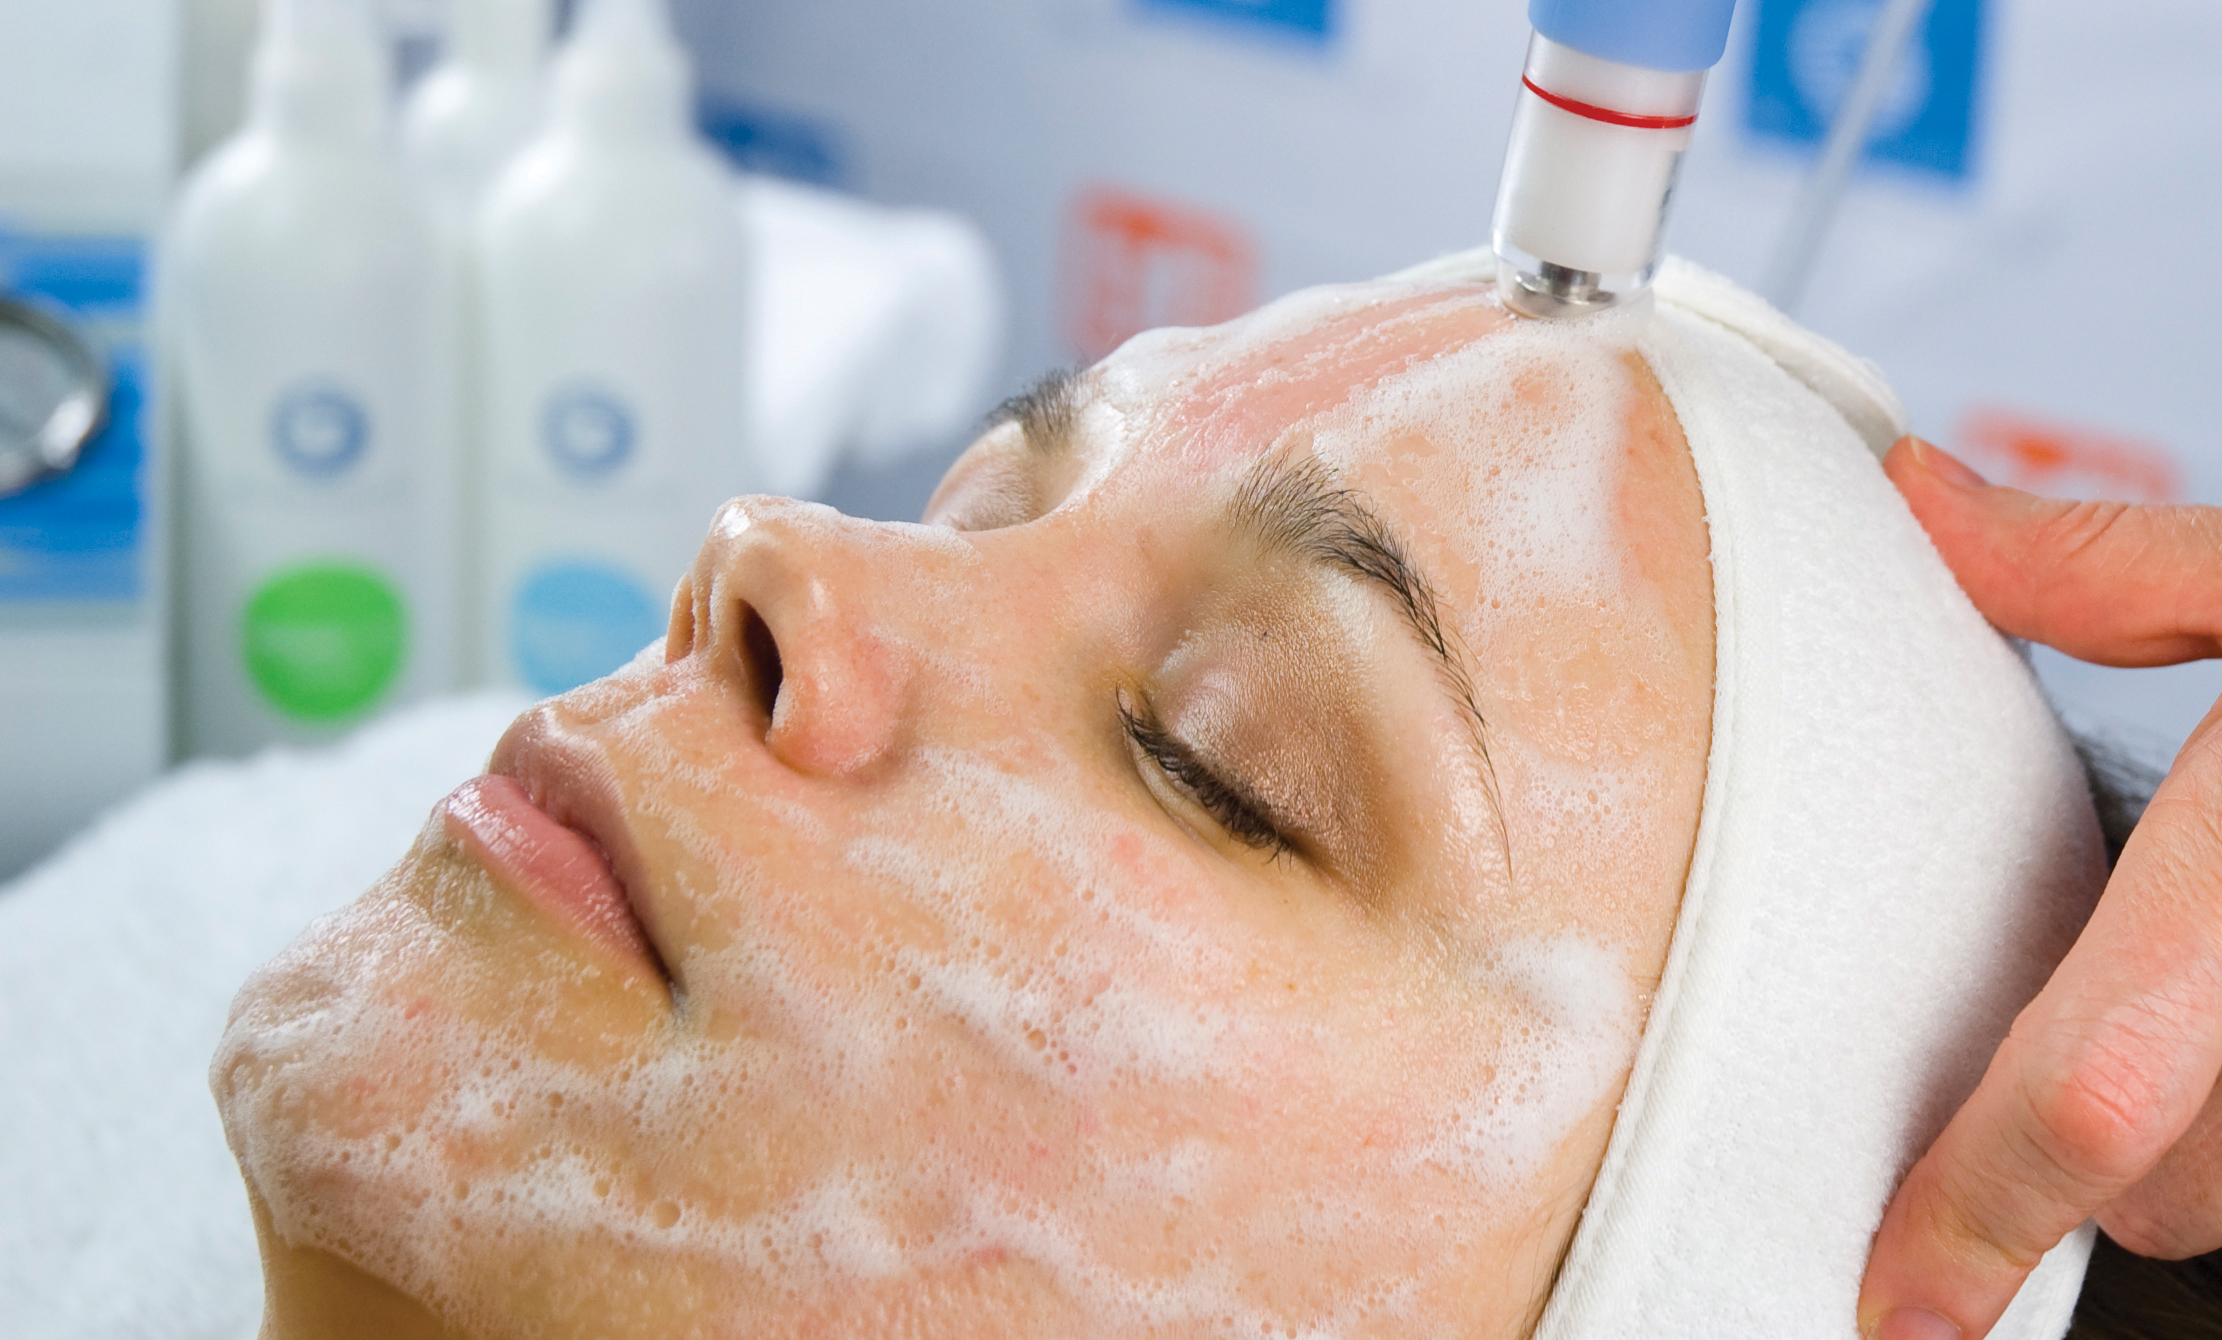 Microdermabrasion techniques have been used for thousands of years. Ancient Egyptians even used special types of sand paper to resurface the skin. As a result of this long lineage of knowledge, skin abrasion systems have vastly improved over the years. The first microdermabrasion machine was developed in 1985, and has since become one of the most popular forms of skin care treatments.       The goal of microdermabrasion is to mechanically slough away the outermost layer of skin. In turn, skin cells are rejuvenated to reveal a brighter, healthier complexion. The newest form of microdermabrasion is the Wet/Dry Microdermabrasion system: Bio-Brasion.       Bio-Brasion is one of the most effective forms of skin exfoliation systems on the market. The Bio-Brasion machine is equipped with five diamond tips. Each tip varies in coarseness. This allows for custom exfoliation according to skin type. Combined with a chemical exfoliant, a diamond tip is passed across the face three times. A gentle suction during this process helps to remove impurities and increase blood flow to the epidermis, encouraging skin cell turnover and collagen production. The Bio-Brasion system is designed for all skin types, including sensitive. Hyper pigmentation, fine lines and wrinkles, enlarged pores, and congested skin will benefit beautifully from the Bio-Brasion Treatment.  Check out this article showcasing Bio-Brasion!        Bio-Brasion is used in our Bio-Brasion w/ Aquafuse Facial. It is recommended to receive Bio-Brasion Treatments on a monthly basis.  Click here to learn more about pricing information!